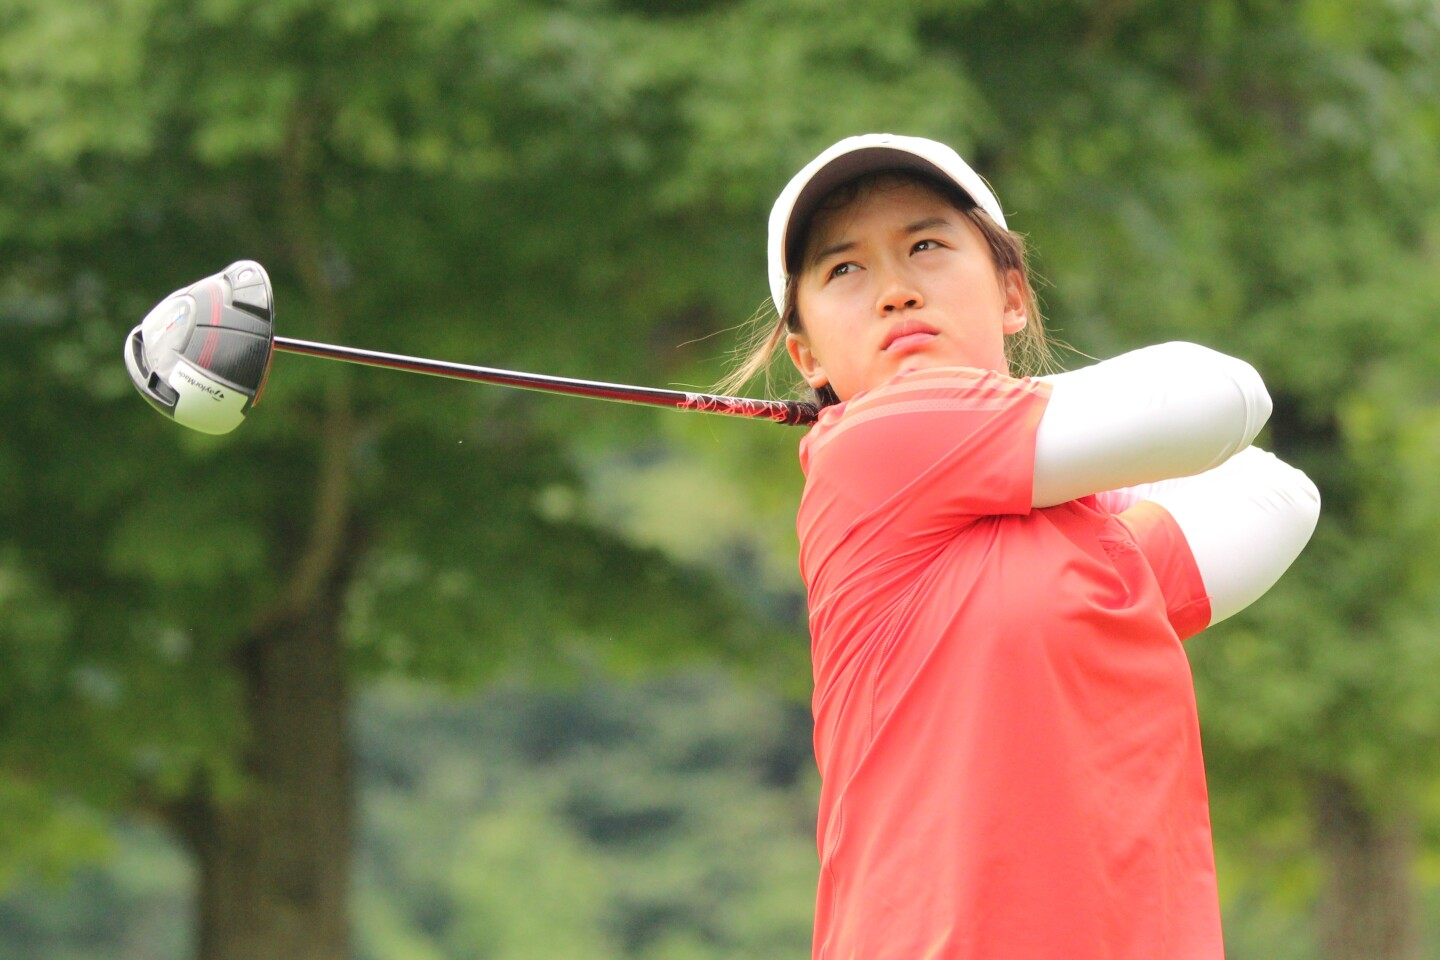 Caiyi (Flora) Zhang - 2019 - Action Photo - R2 (Leader Crop for Web) - GPCJAS.jpg